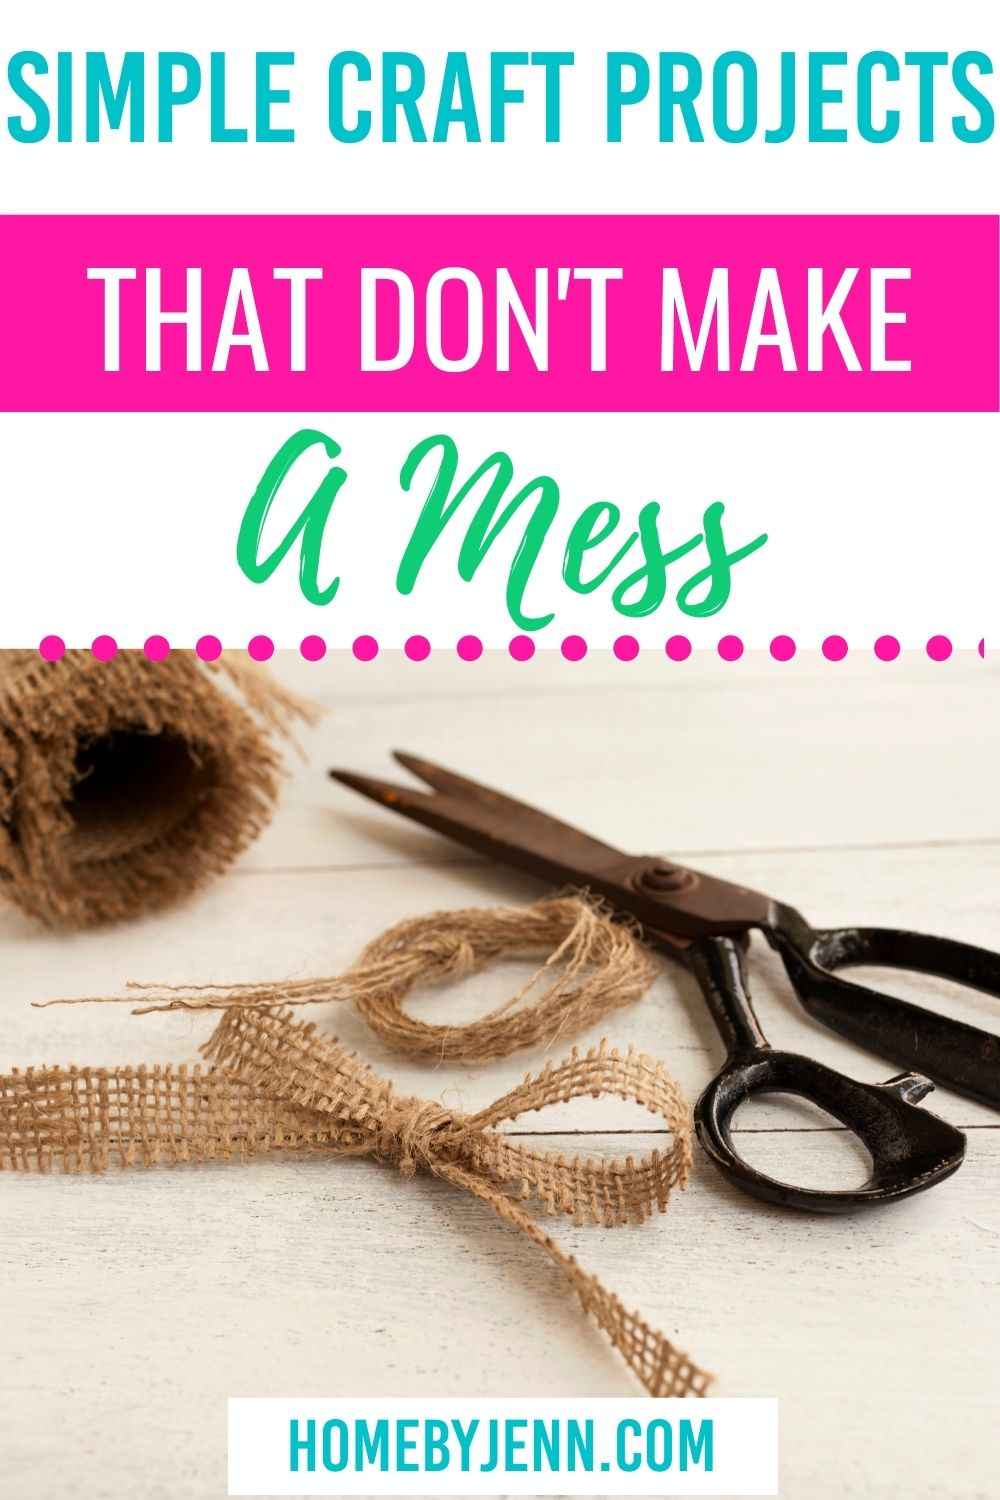 One downside to doing crafts is the mess it can make and the space that it takes. I'm going to share some simple craft projects you can do that don't make a mess. Who knows, you might find your new hobby! via @homebyjenn